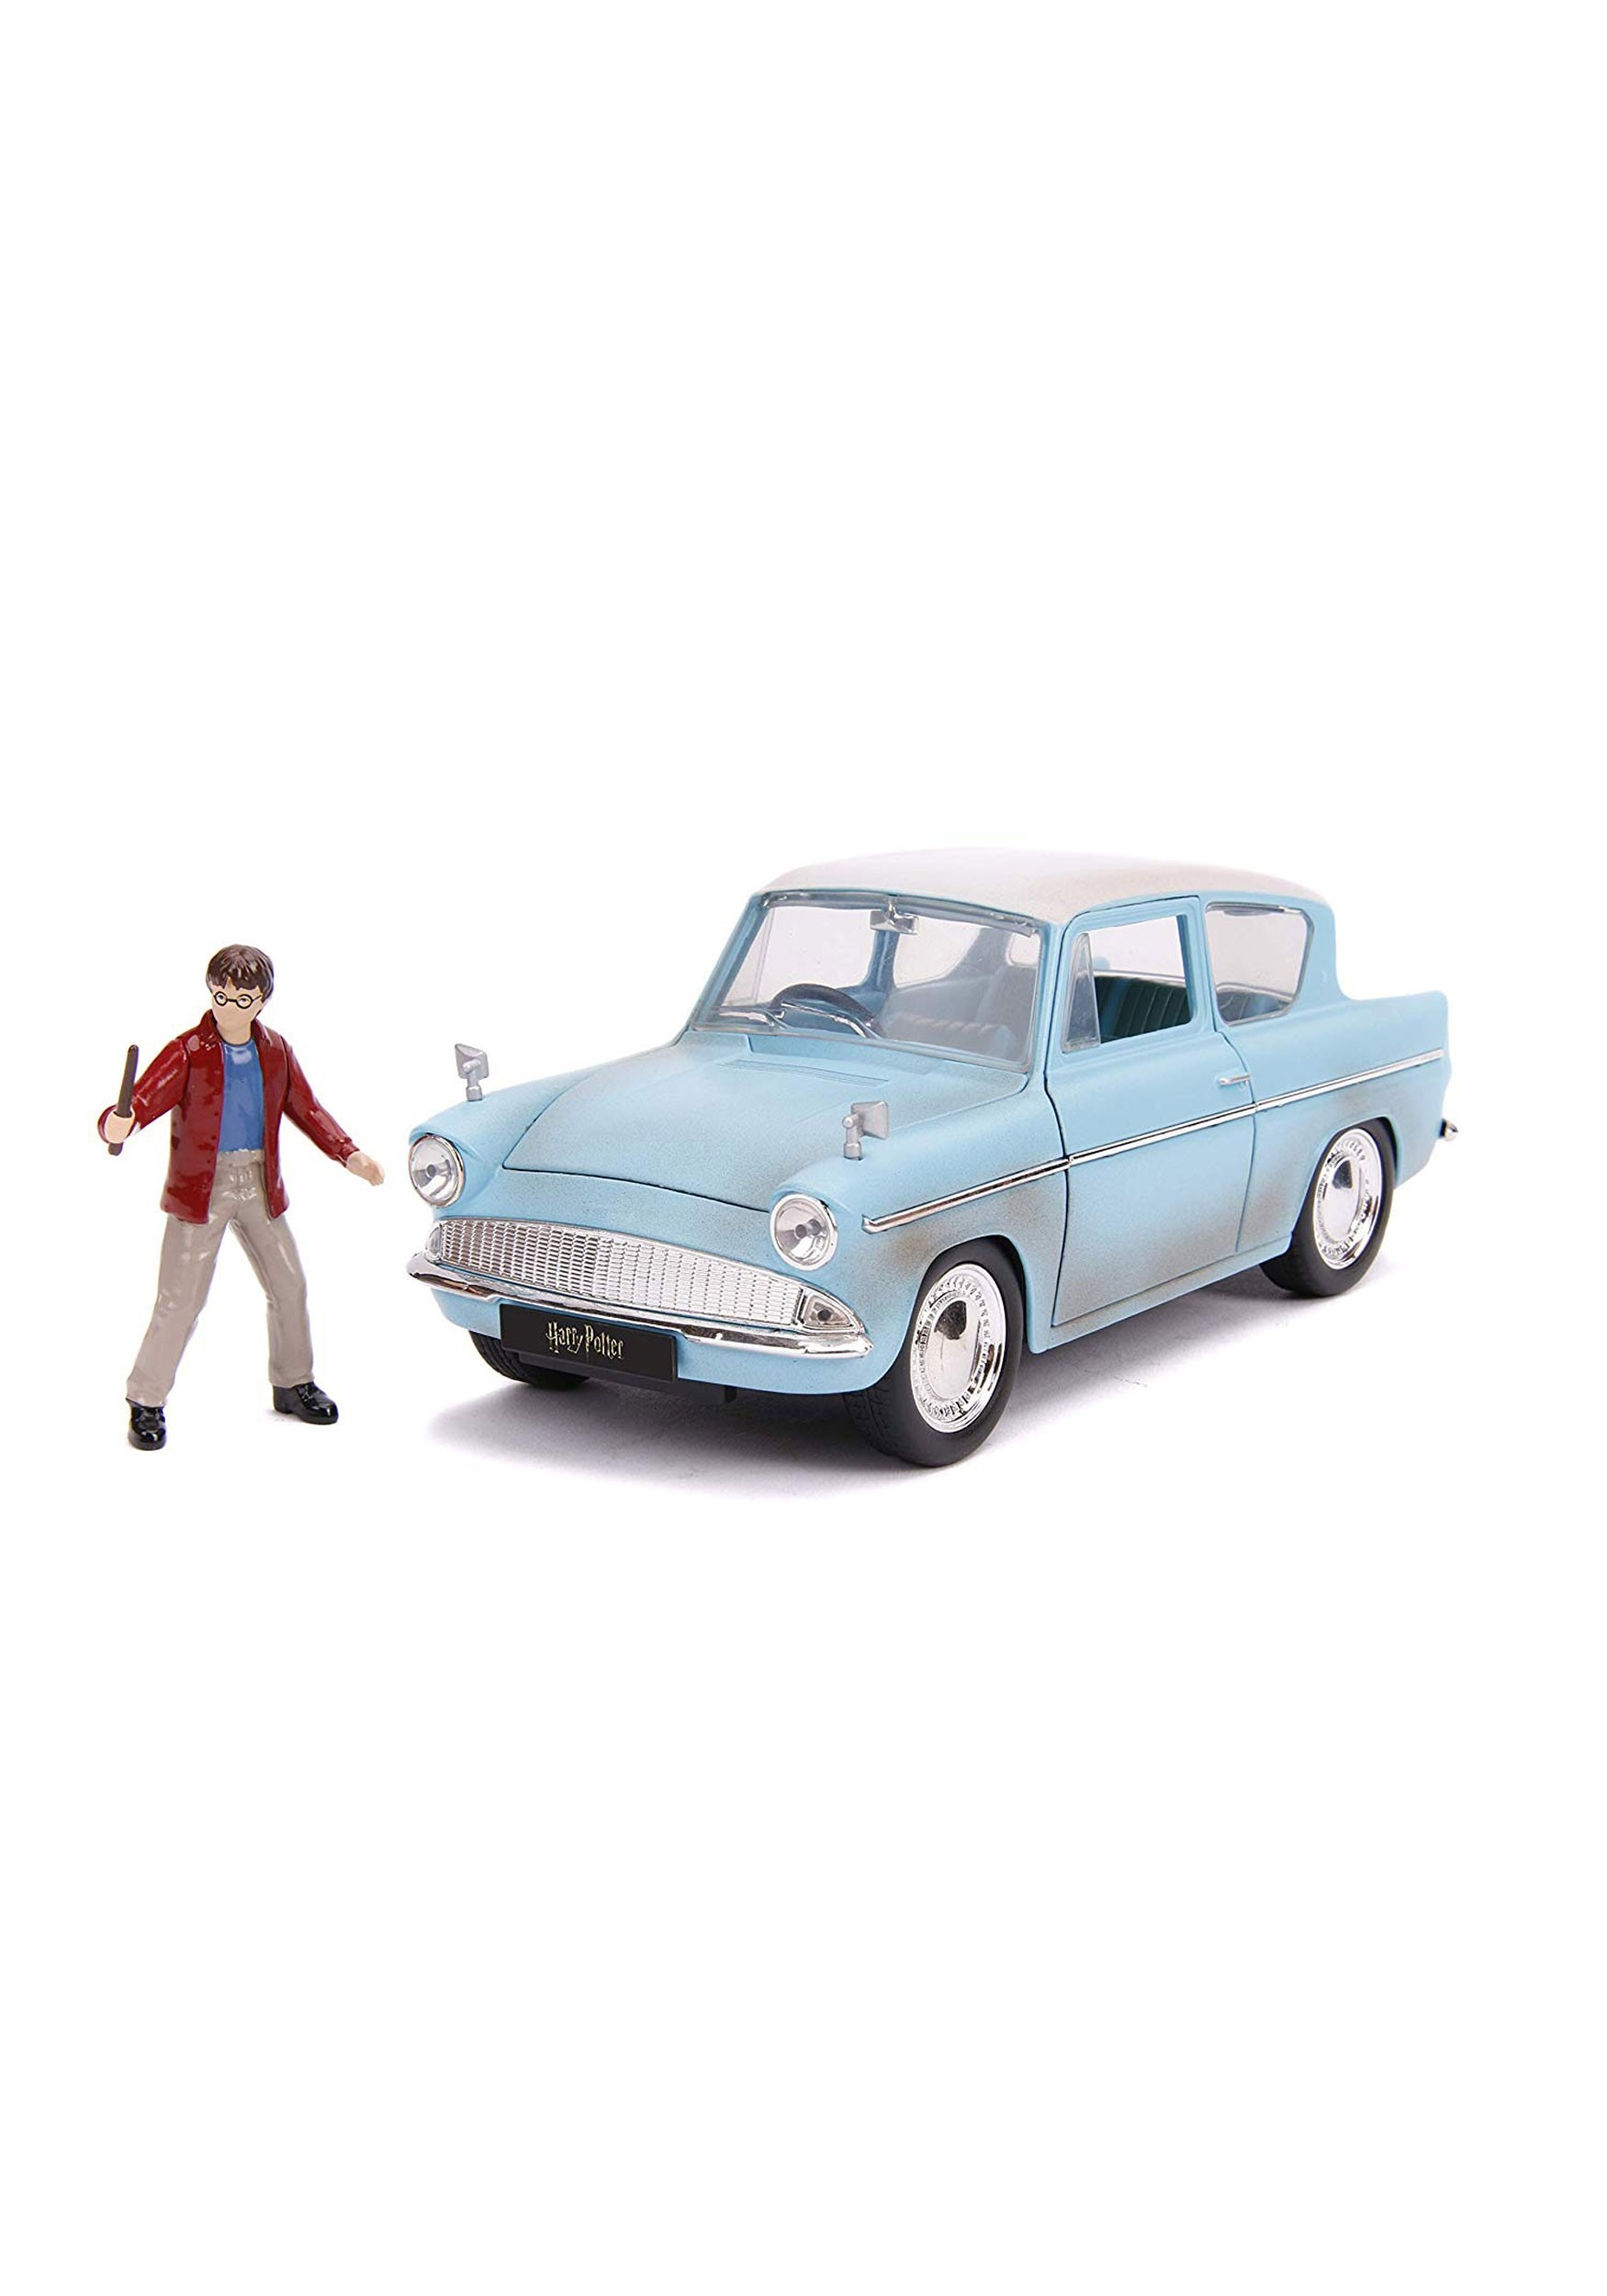 Harry Potter 1959 Ford Anglia 1:24 Scale w/ Figure